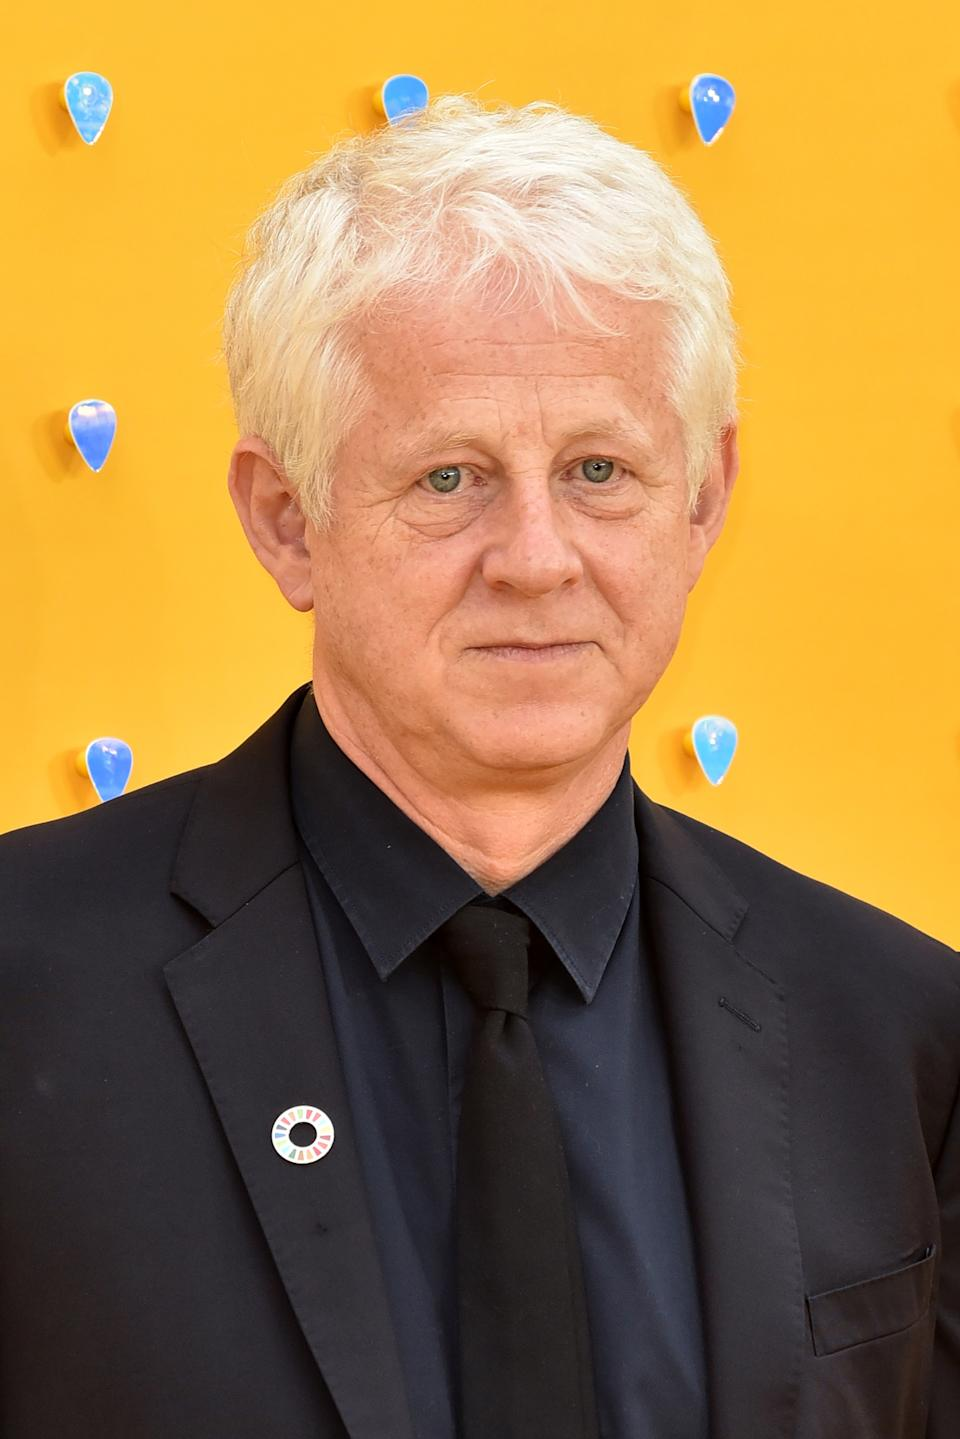 Richard Curtis attends the UK Premiere of 'Yesterday' at the Odeon Luxe in Leicester Square, London, England. (Photo by James Warren / SOPA Images/Sipa USA)